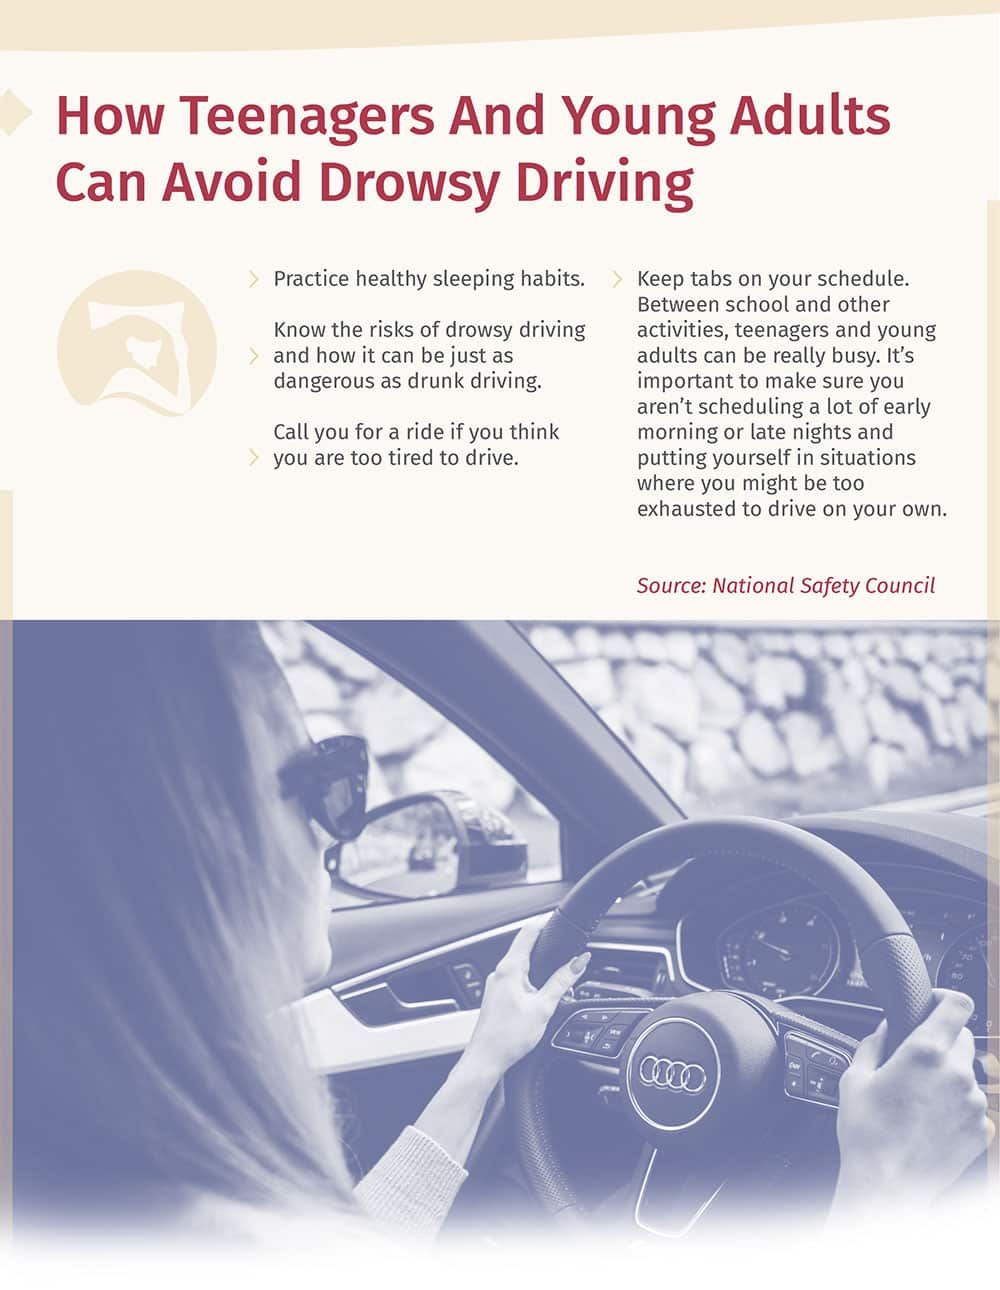 How Teenagers And Young Adults Can Avoid Drowsy Driving